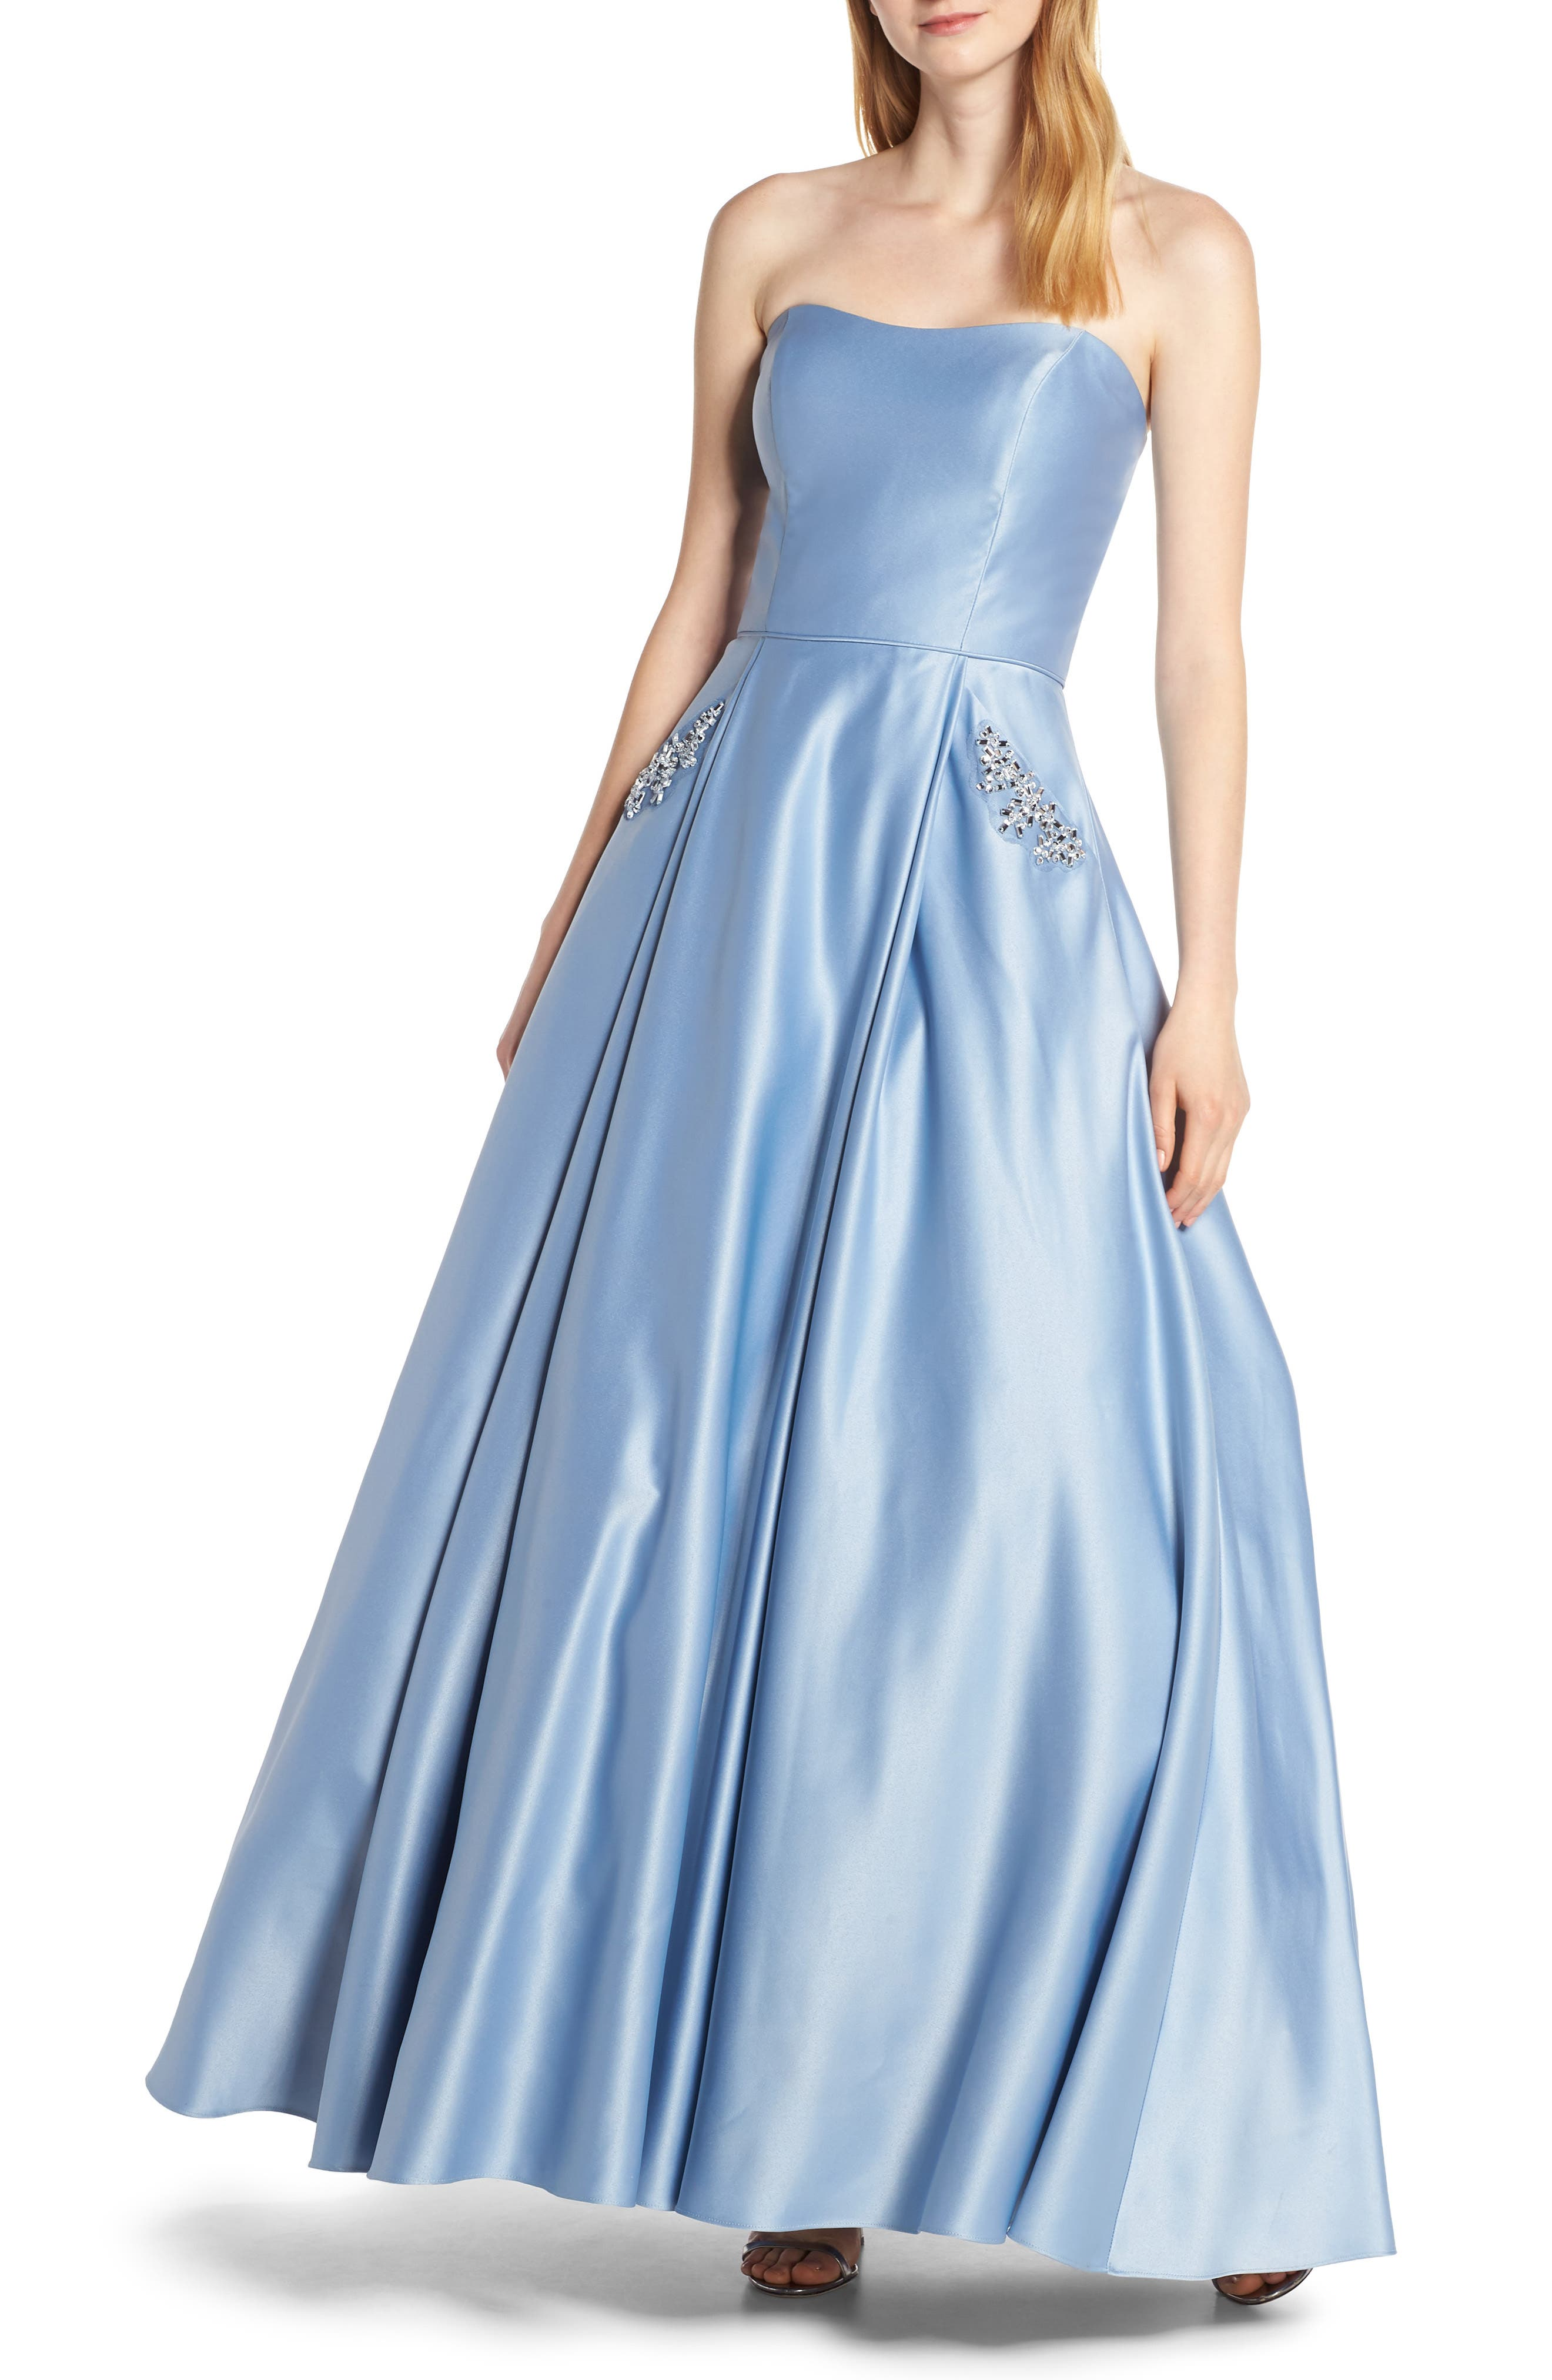 Blondie Nites Strapless Embellished Pocket Satin Evening Dress